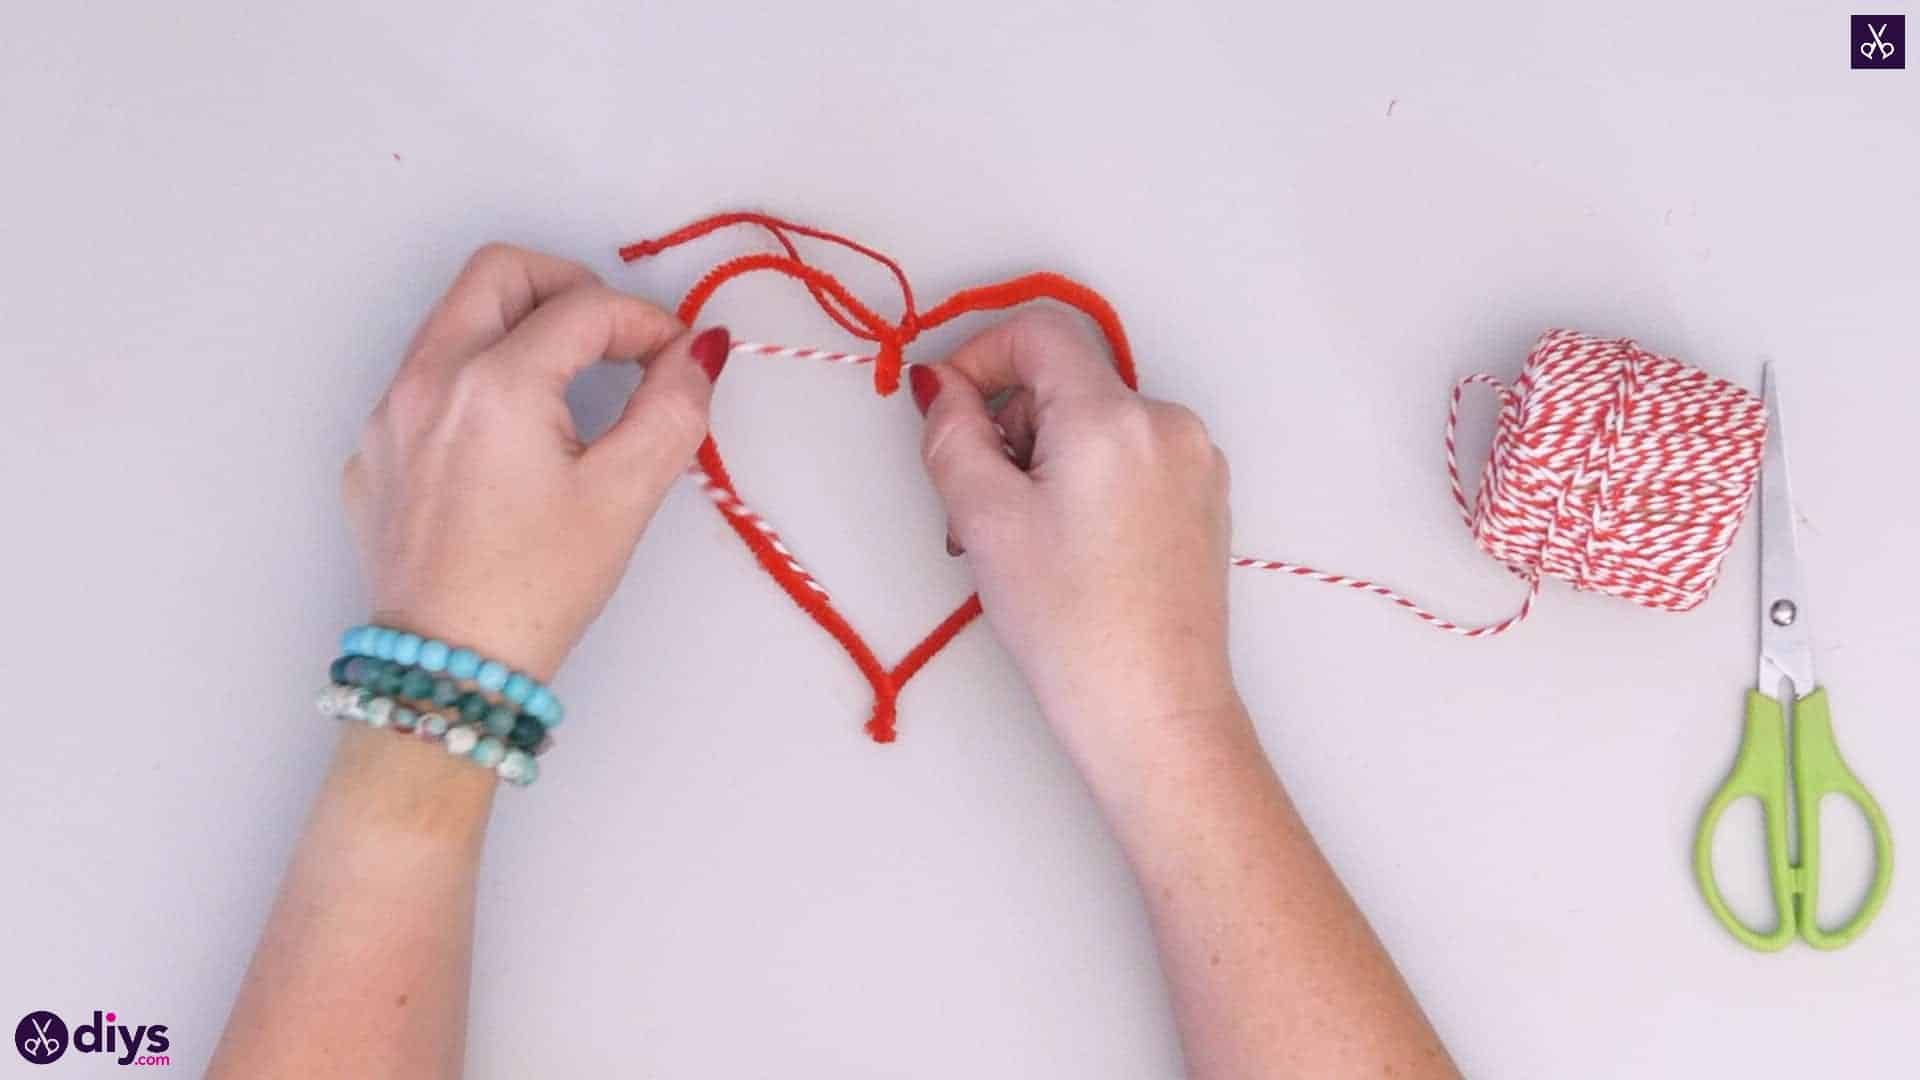 Diy hanging heart wall decor step 4